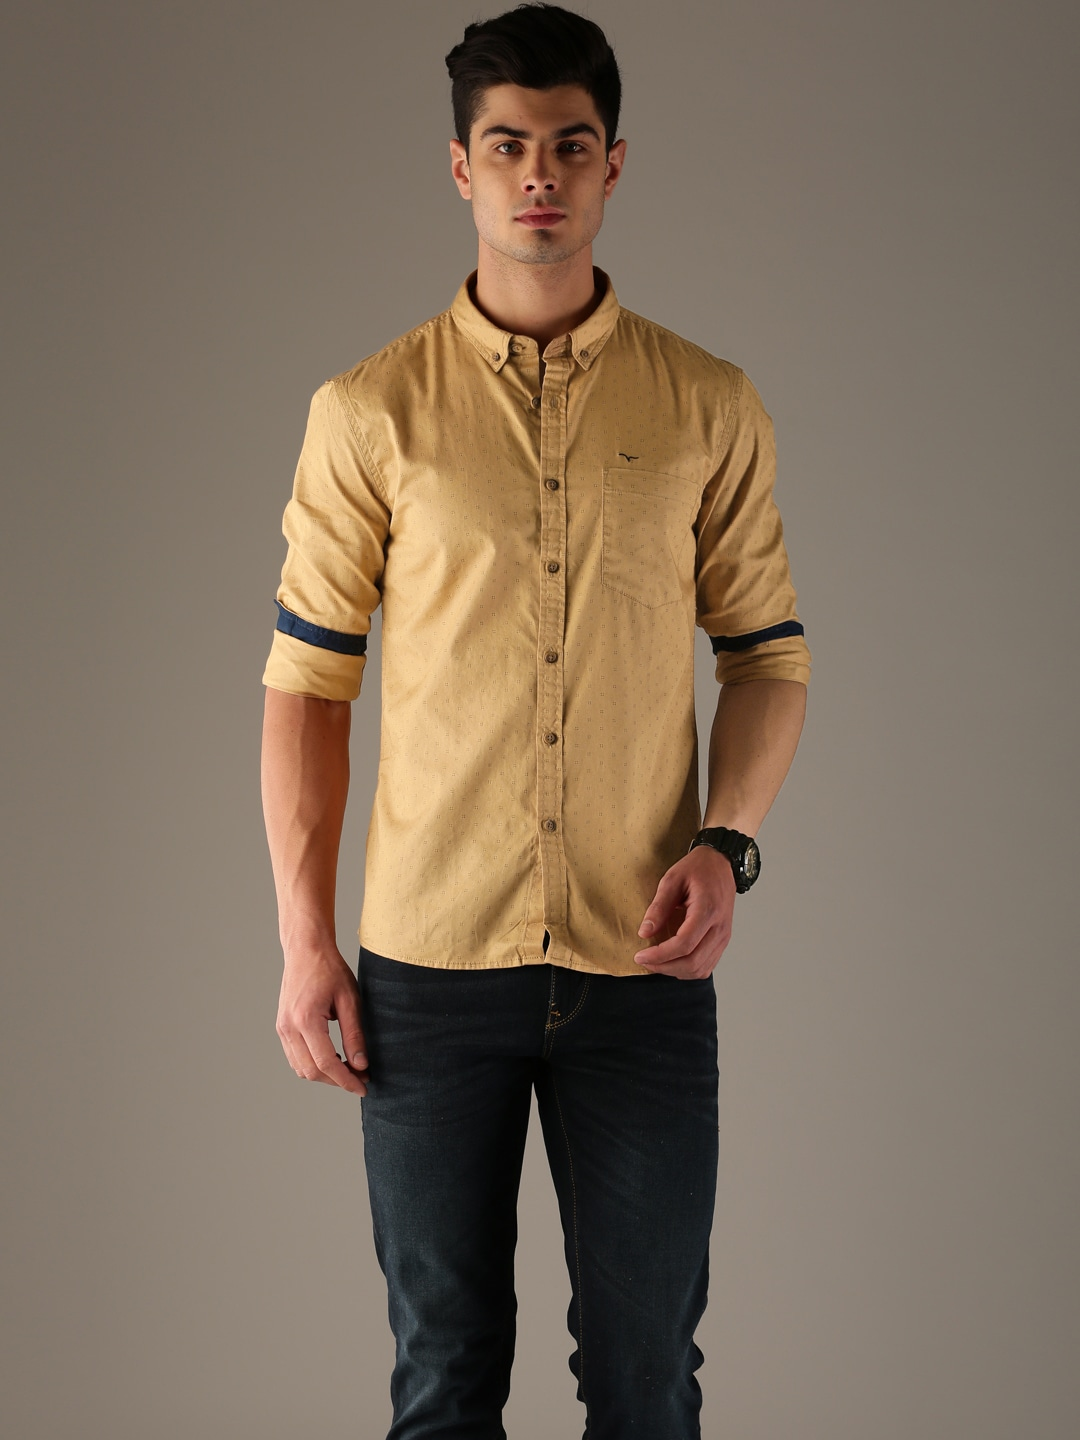 a69fae373e Casual Shirts for Men - Buy Men Casual Shirt Online in India